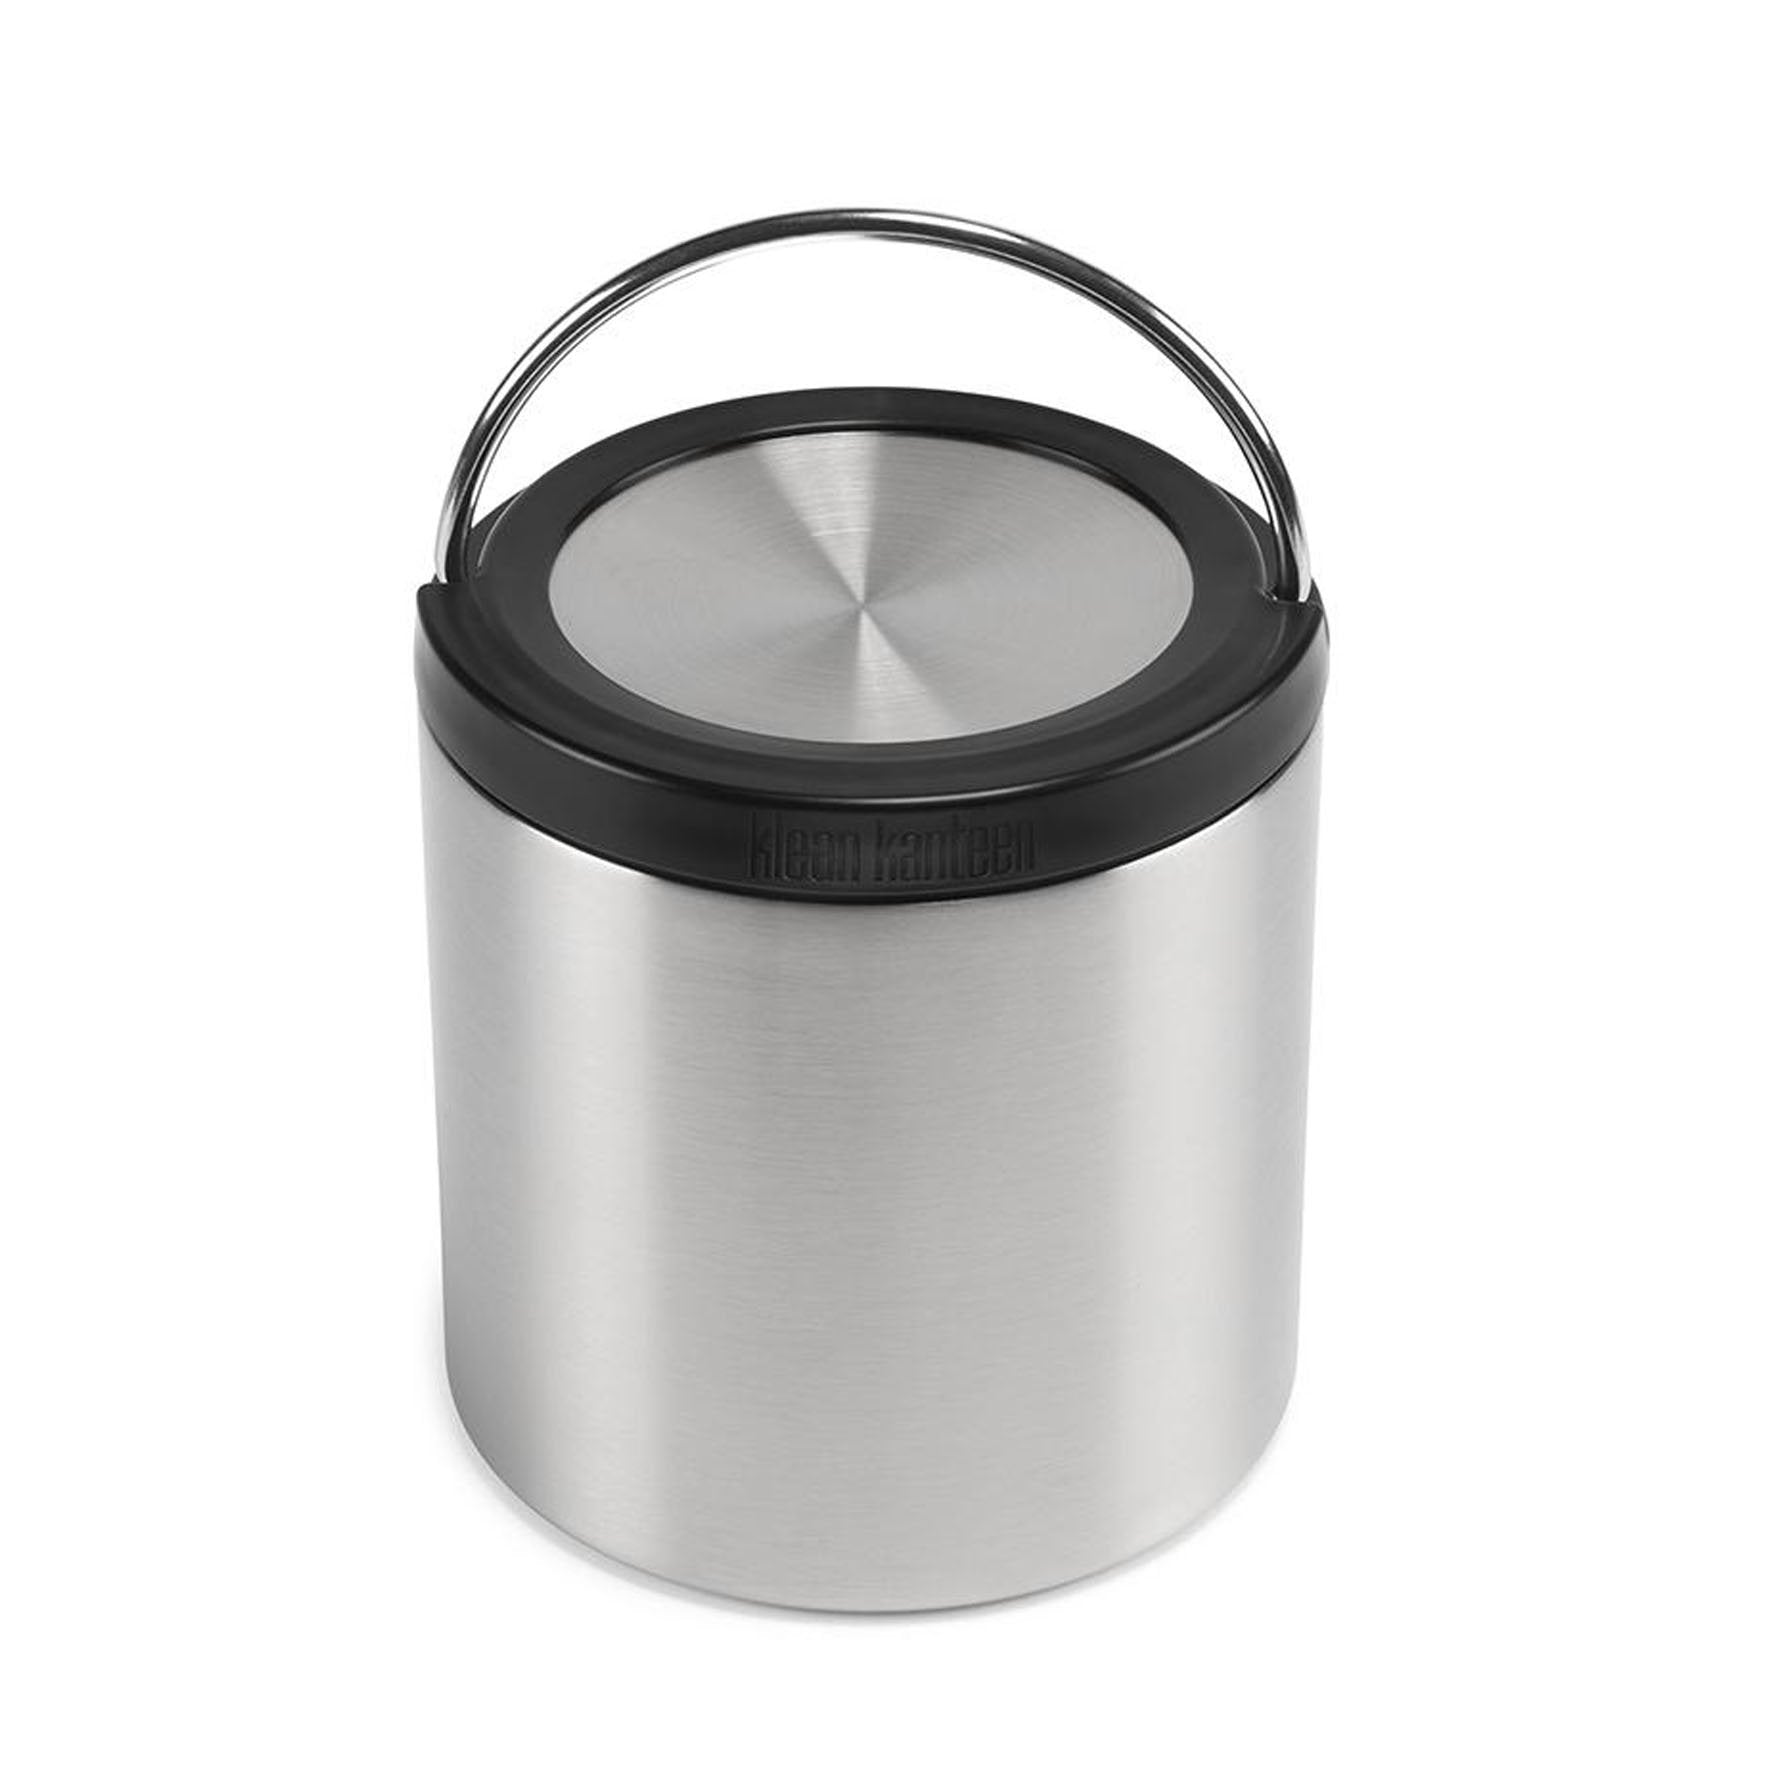 Klean Kanteen TKCanister with Insulated Lid Brushed Stainless 32oz 946ml Klean Kanteen Food Storage Containers at Little Earth Nest Eco Shop